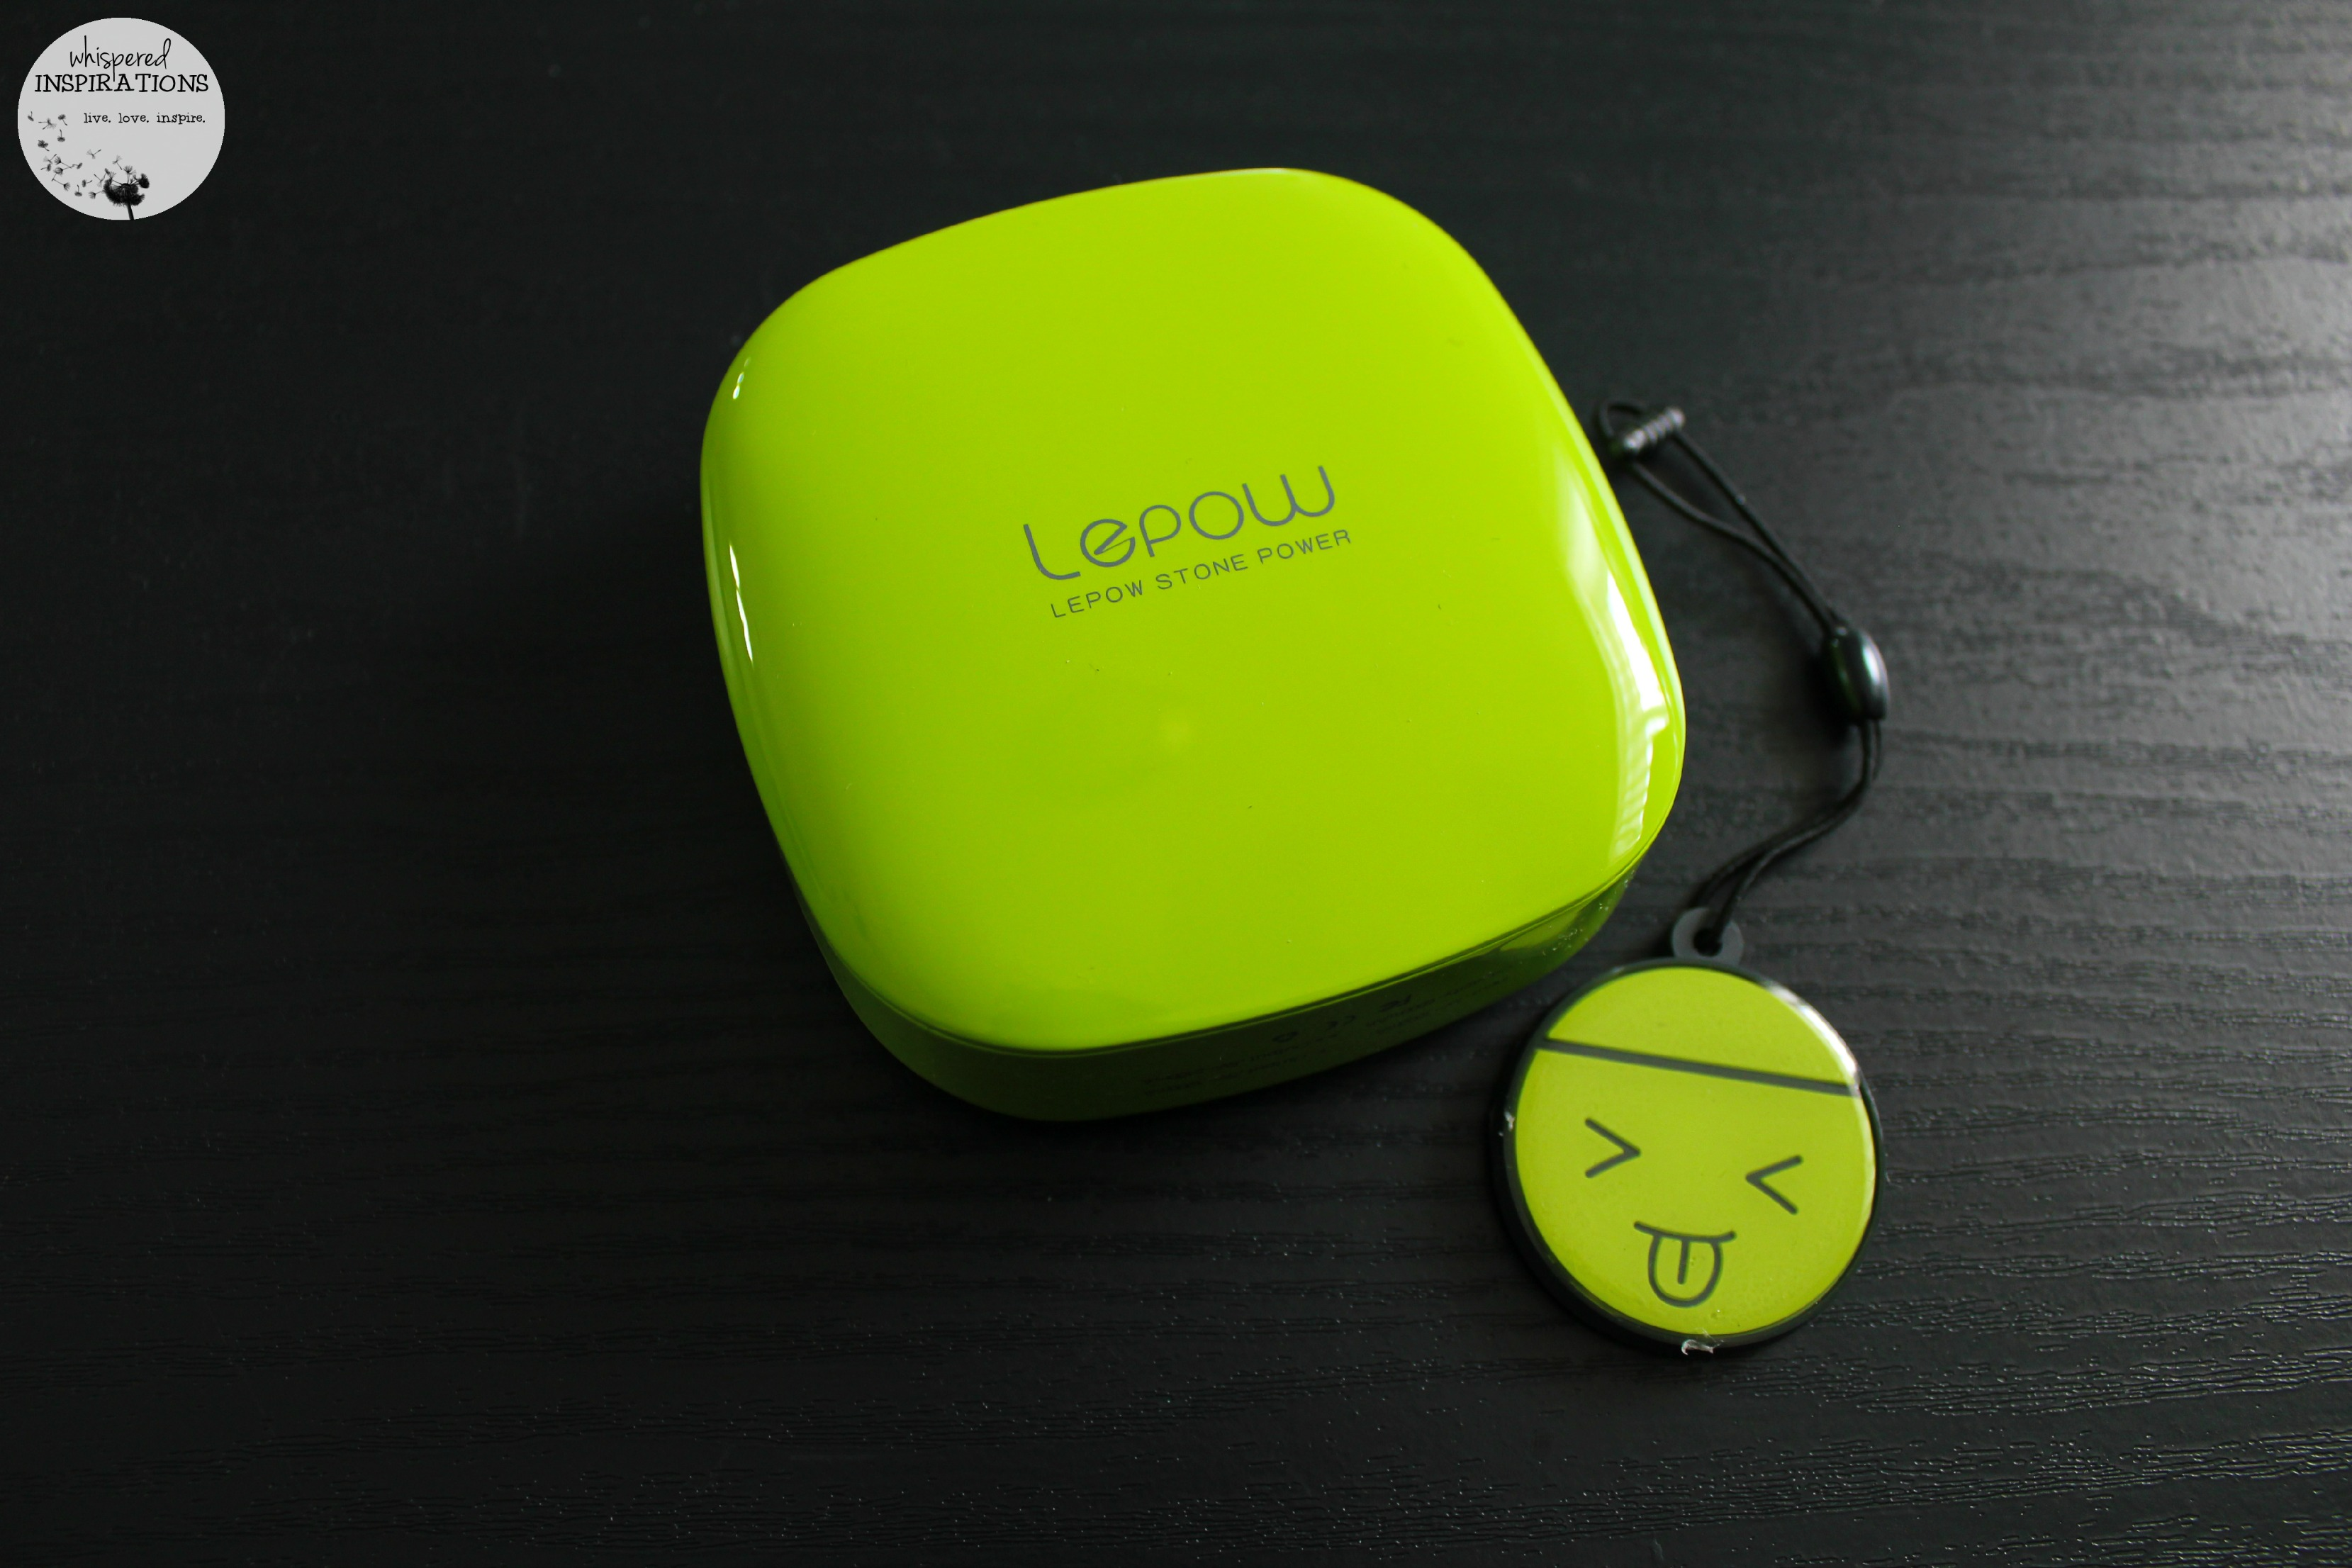 Lepow Moonstone: A Mobile Power Bank to Charge Your Devices On the Go. Say Hello to Charged Devices Forever! #tech